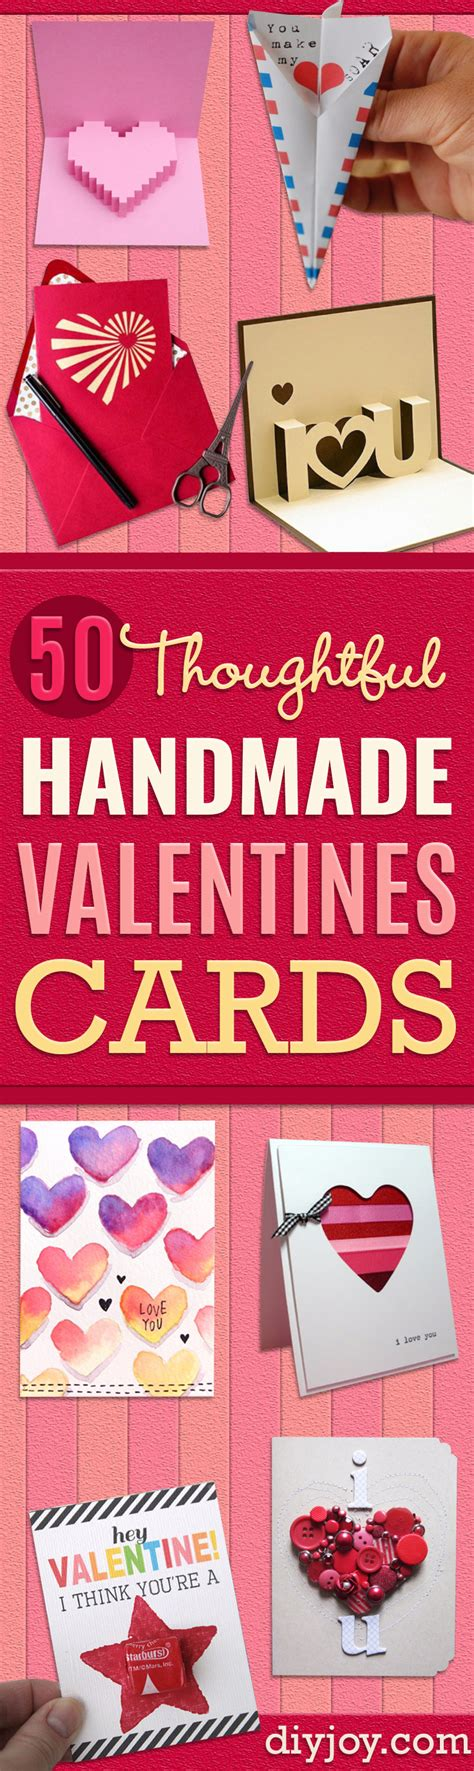 how to make cool valentines day cards 50 thoughtful handmade valentines cards diy